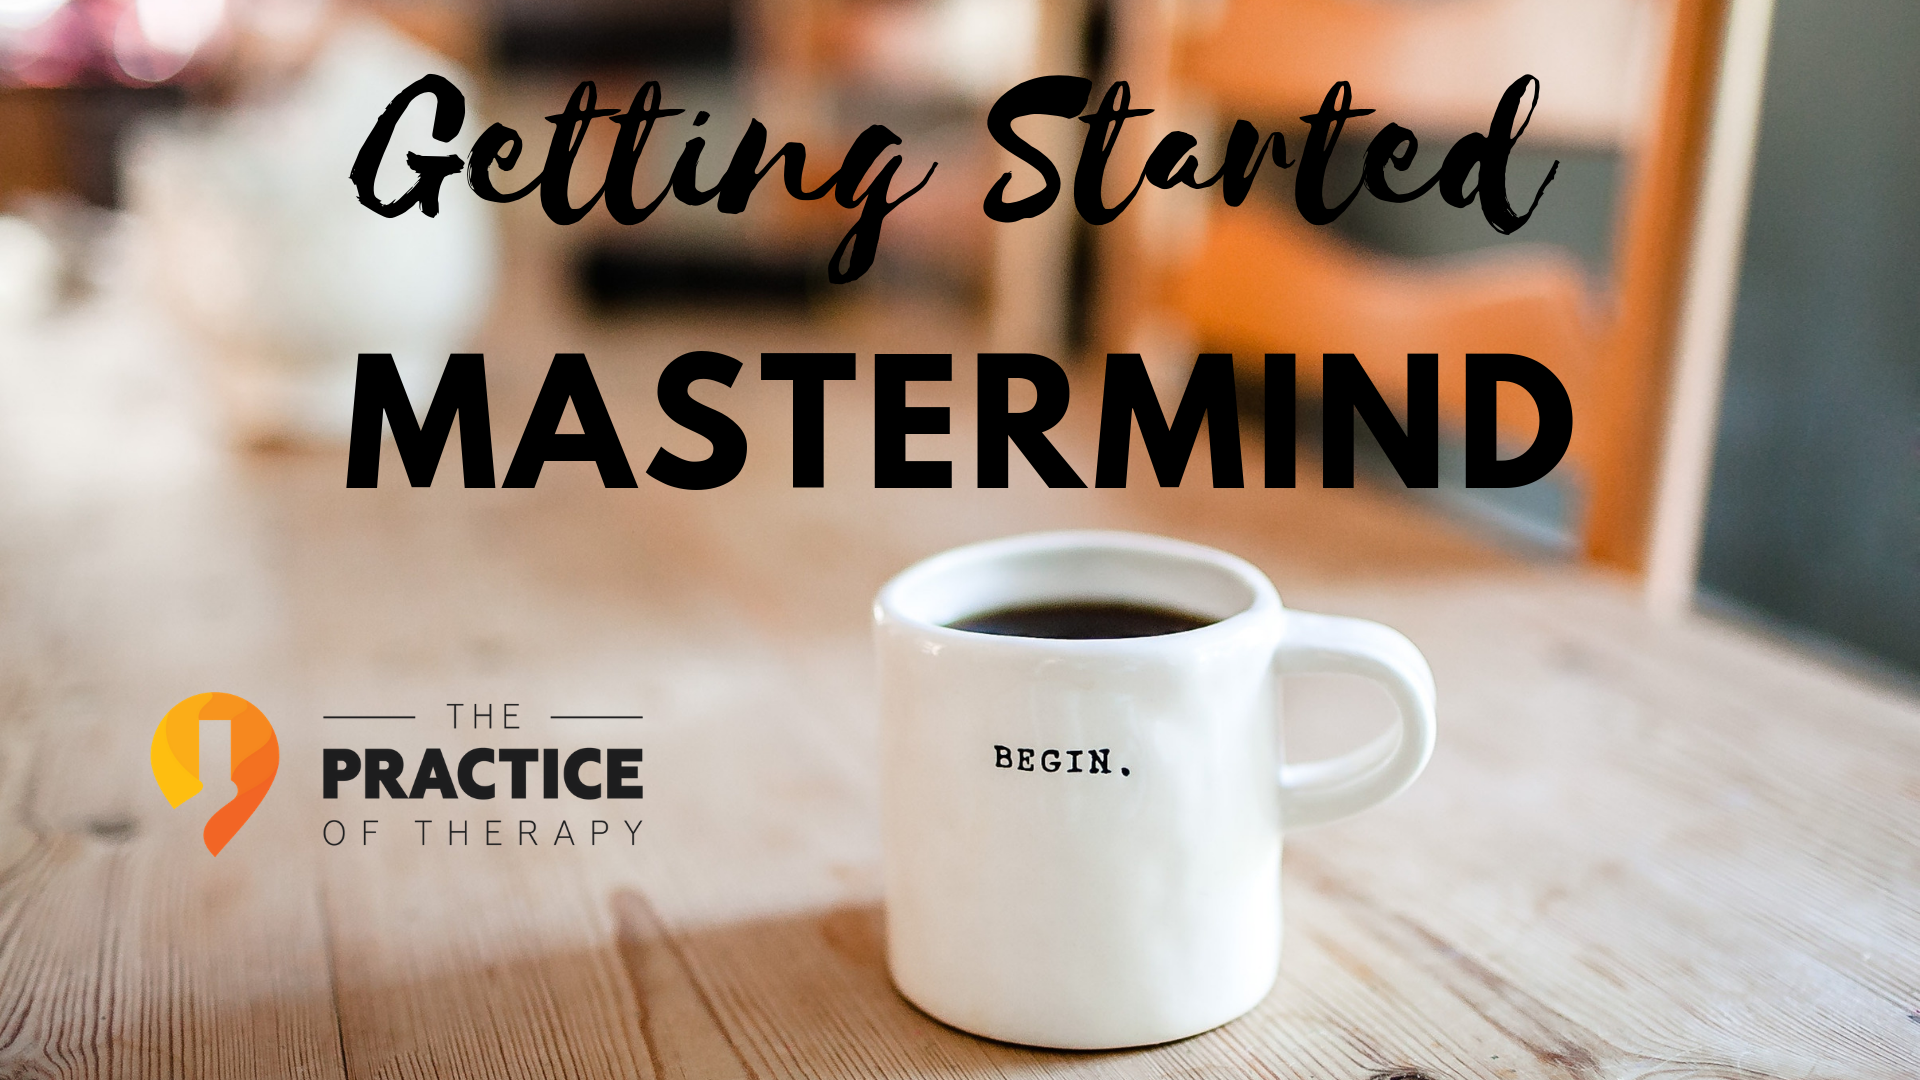 getting started mastermind